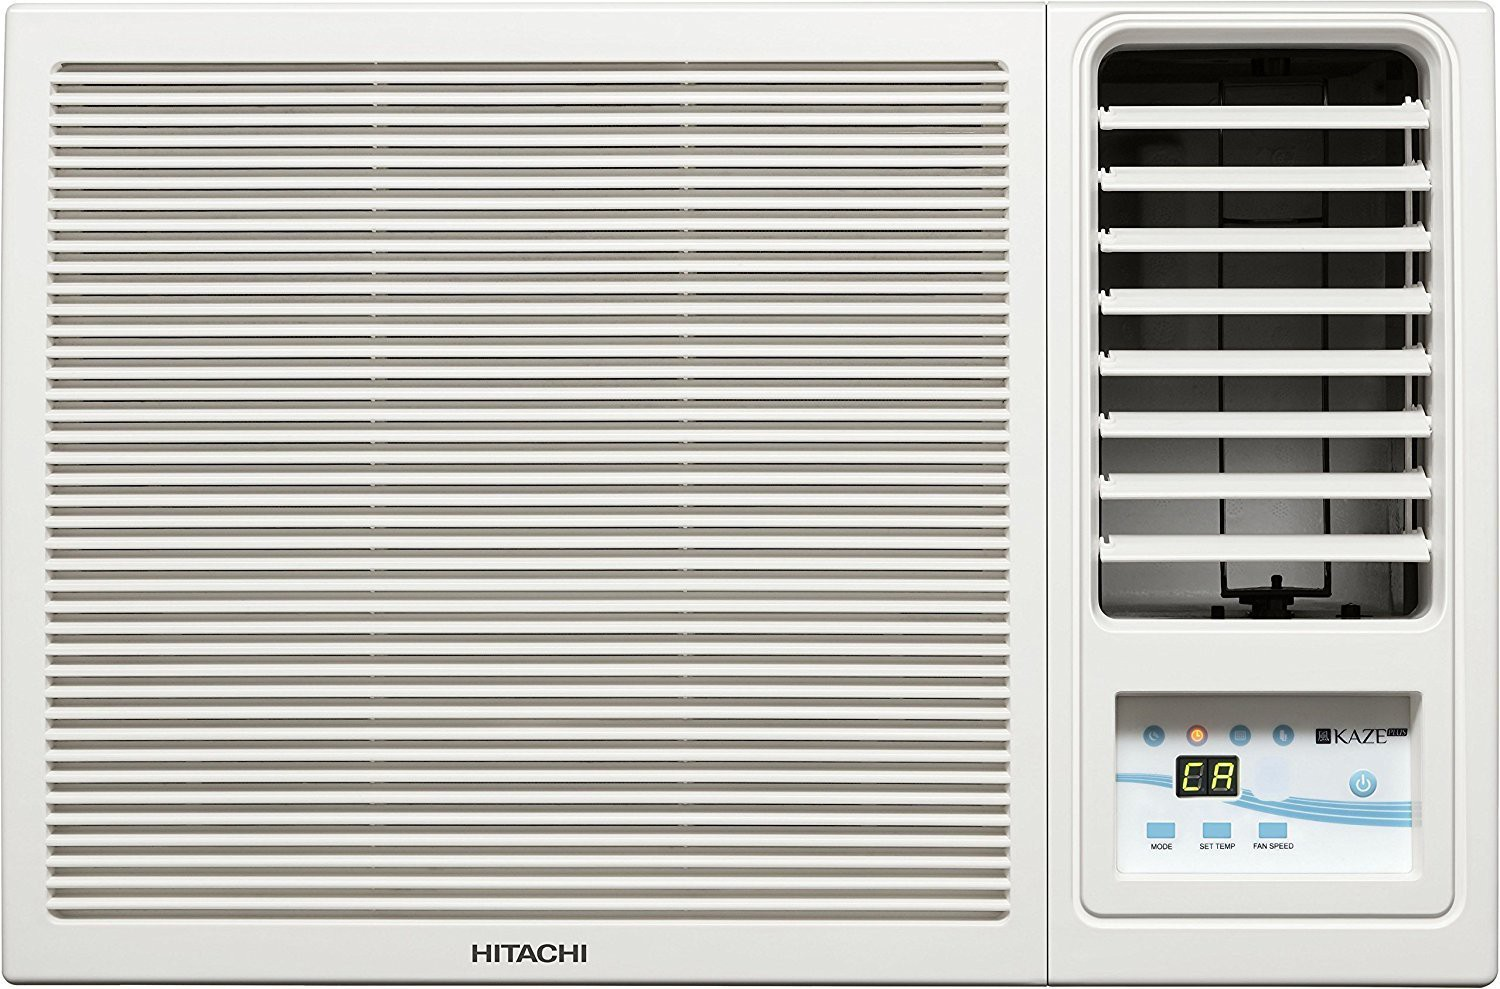 Hitachi 1 Ton 3 Star Window AC - White(RAW312KWD)